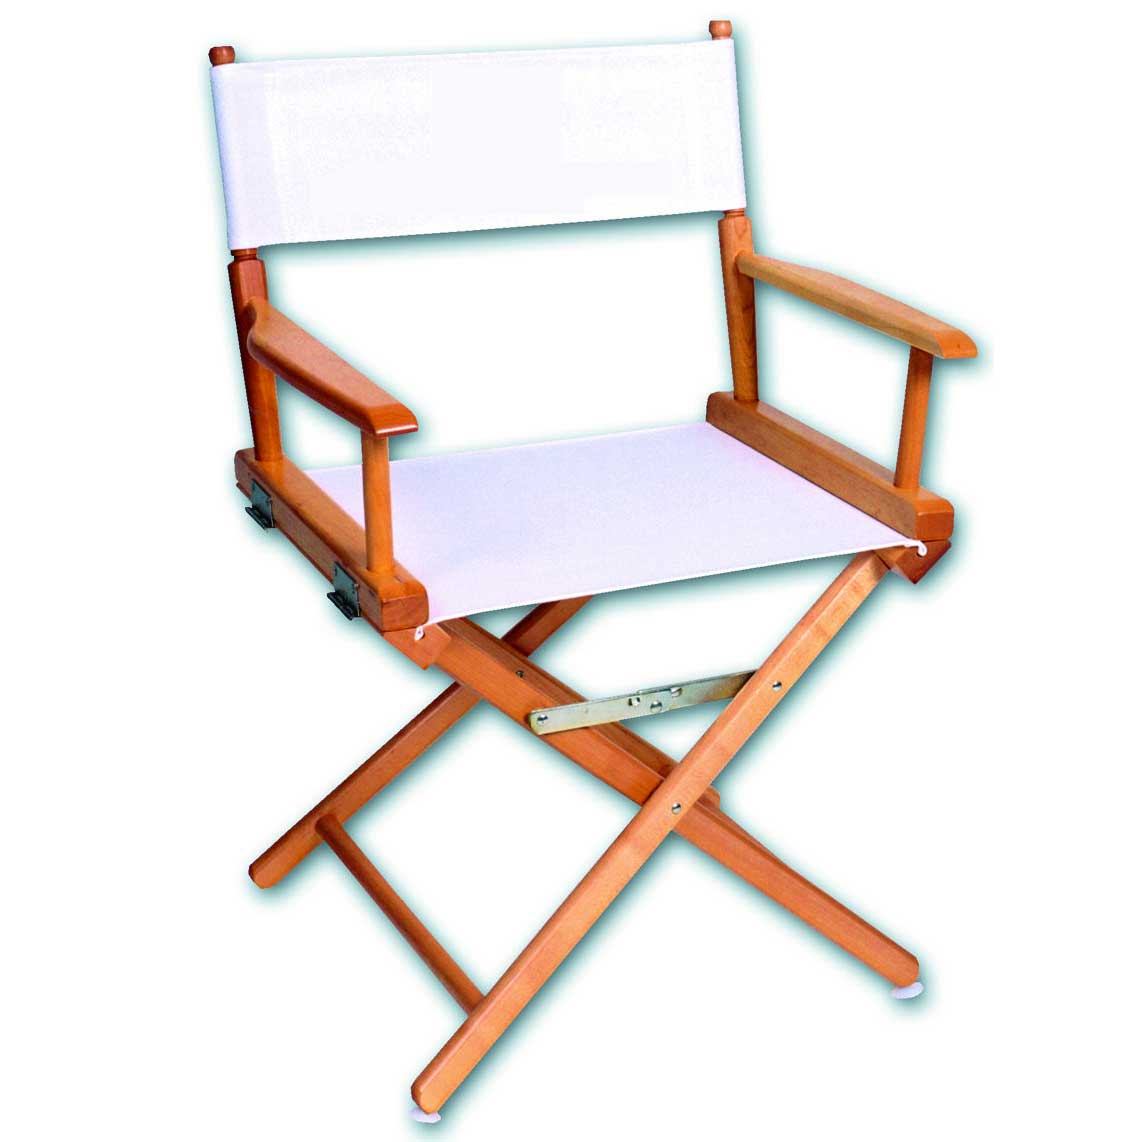 [Request] Director s chairs BuyItForLife